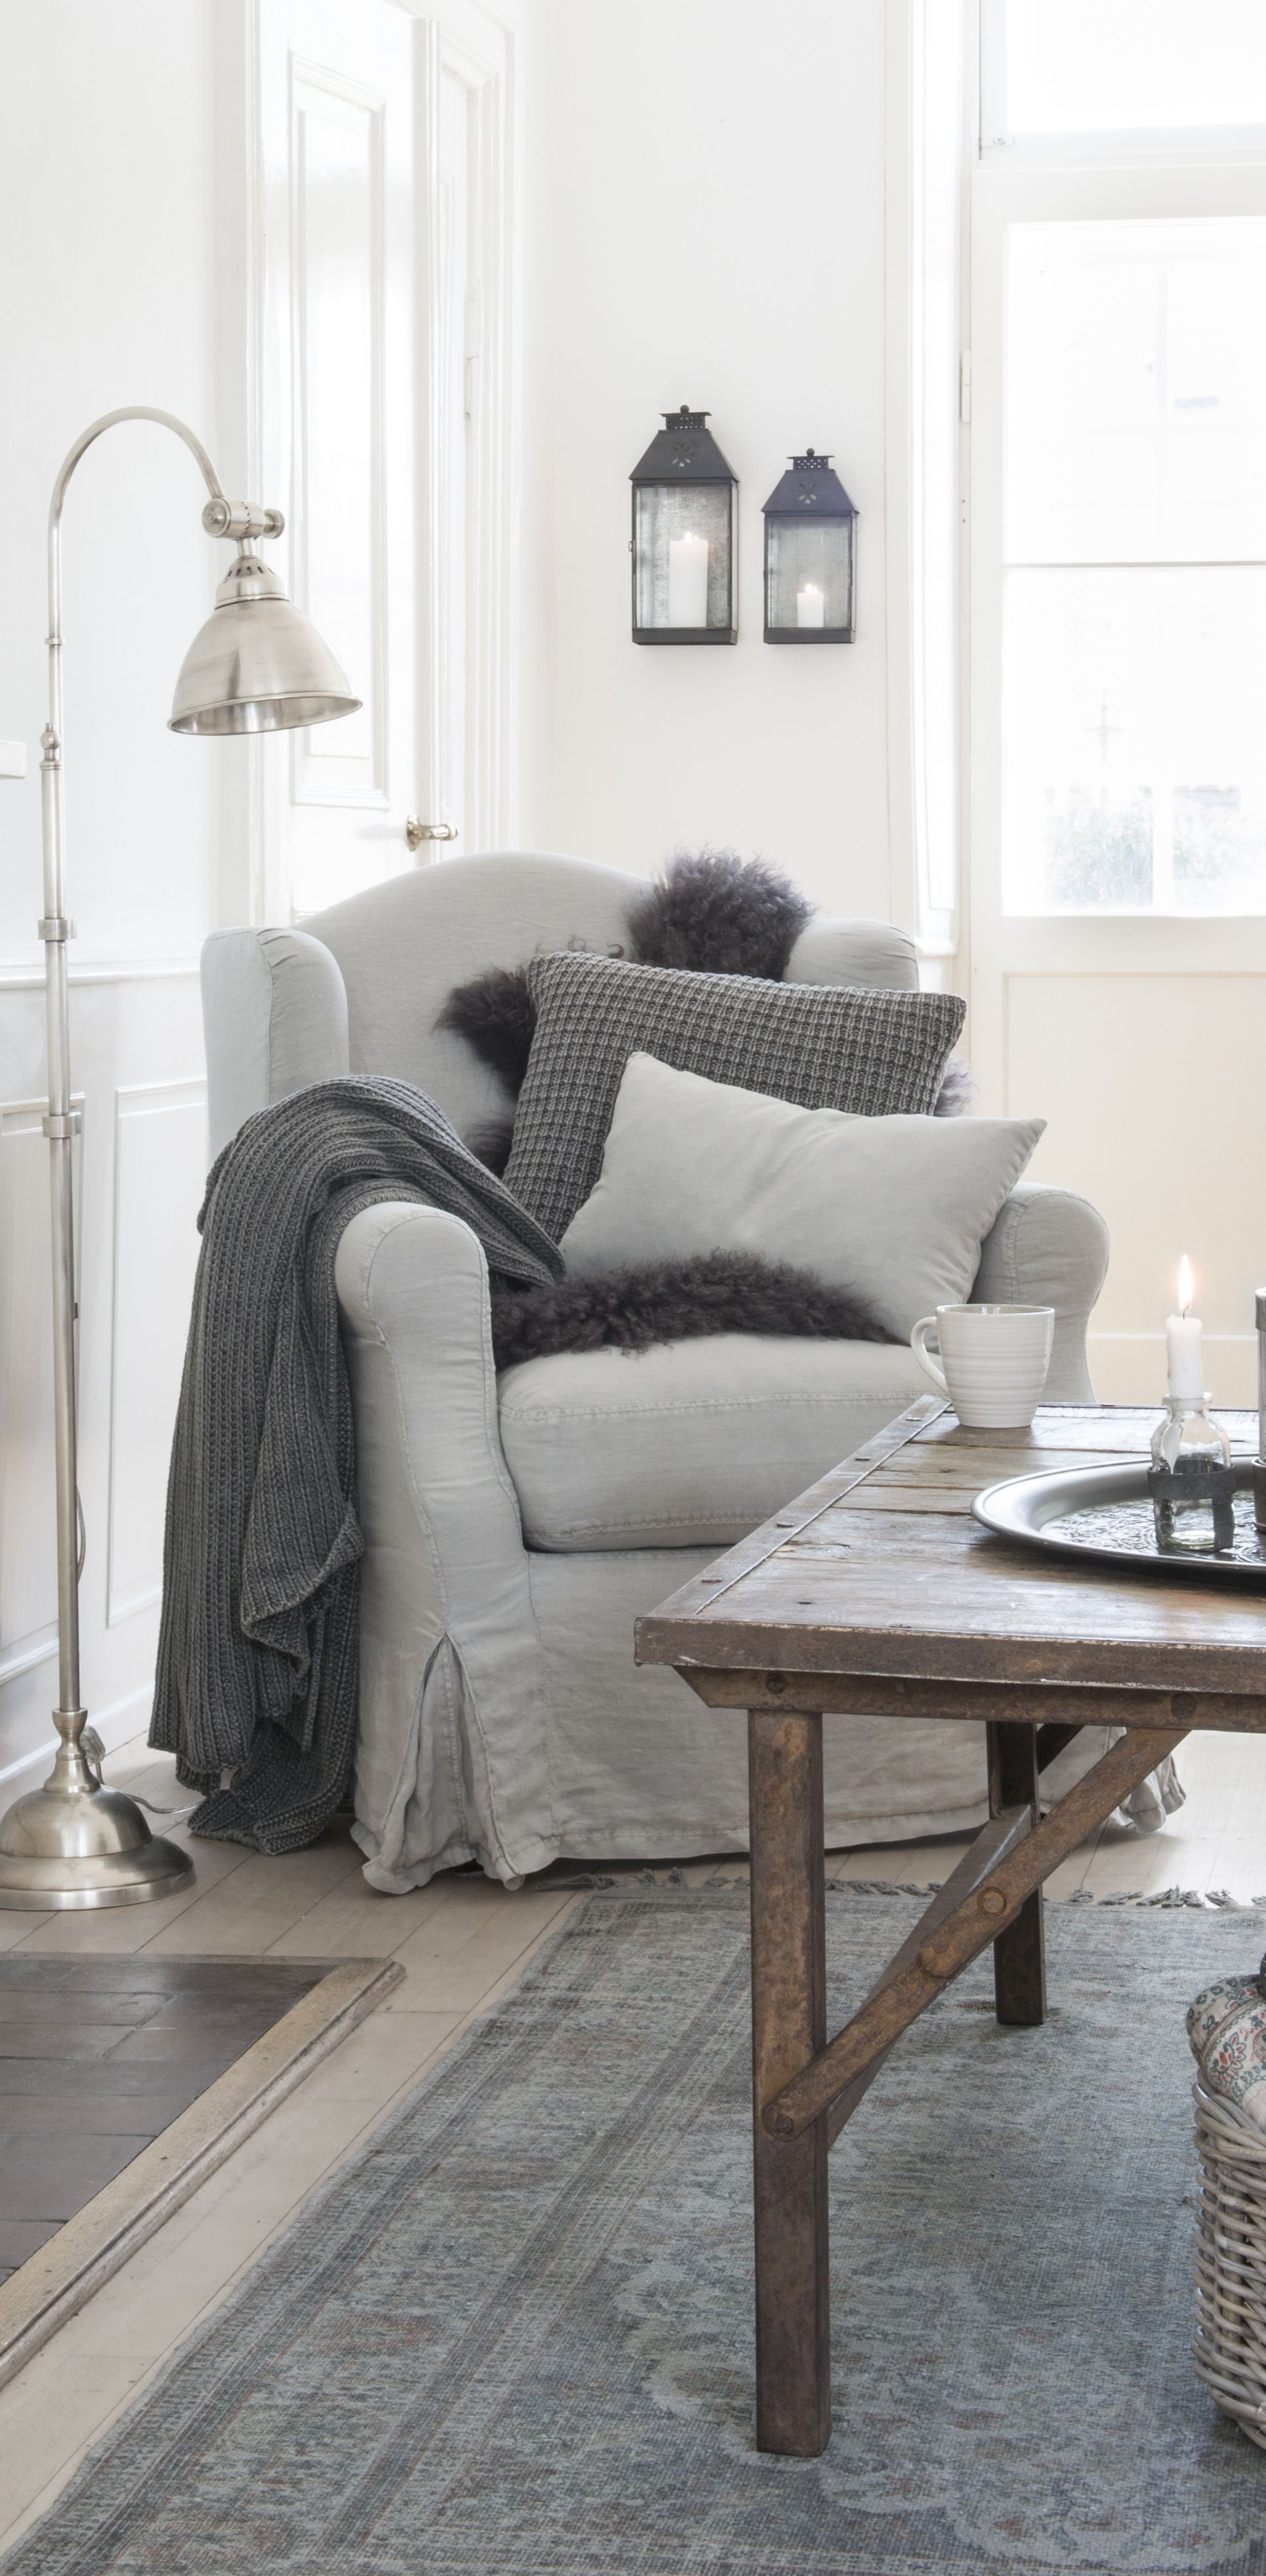 White Sitting Room With Gray Furniture Throw Blankets And Pillows